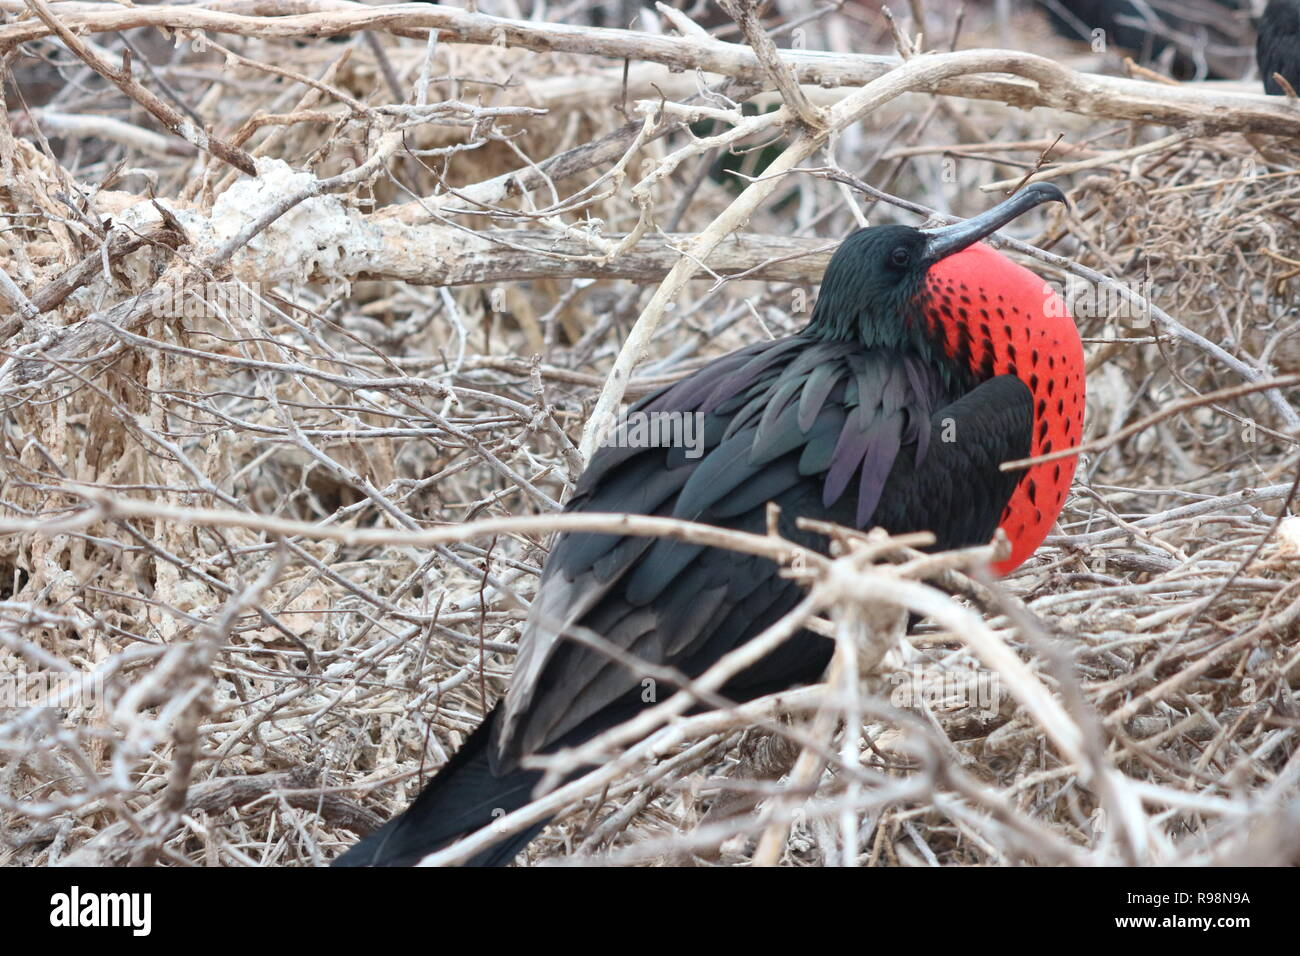 Close up of a Frigate bird trying to attract a mate by inflating its gular pouch on North Seymour Island, Galapagos - Stock Image